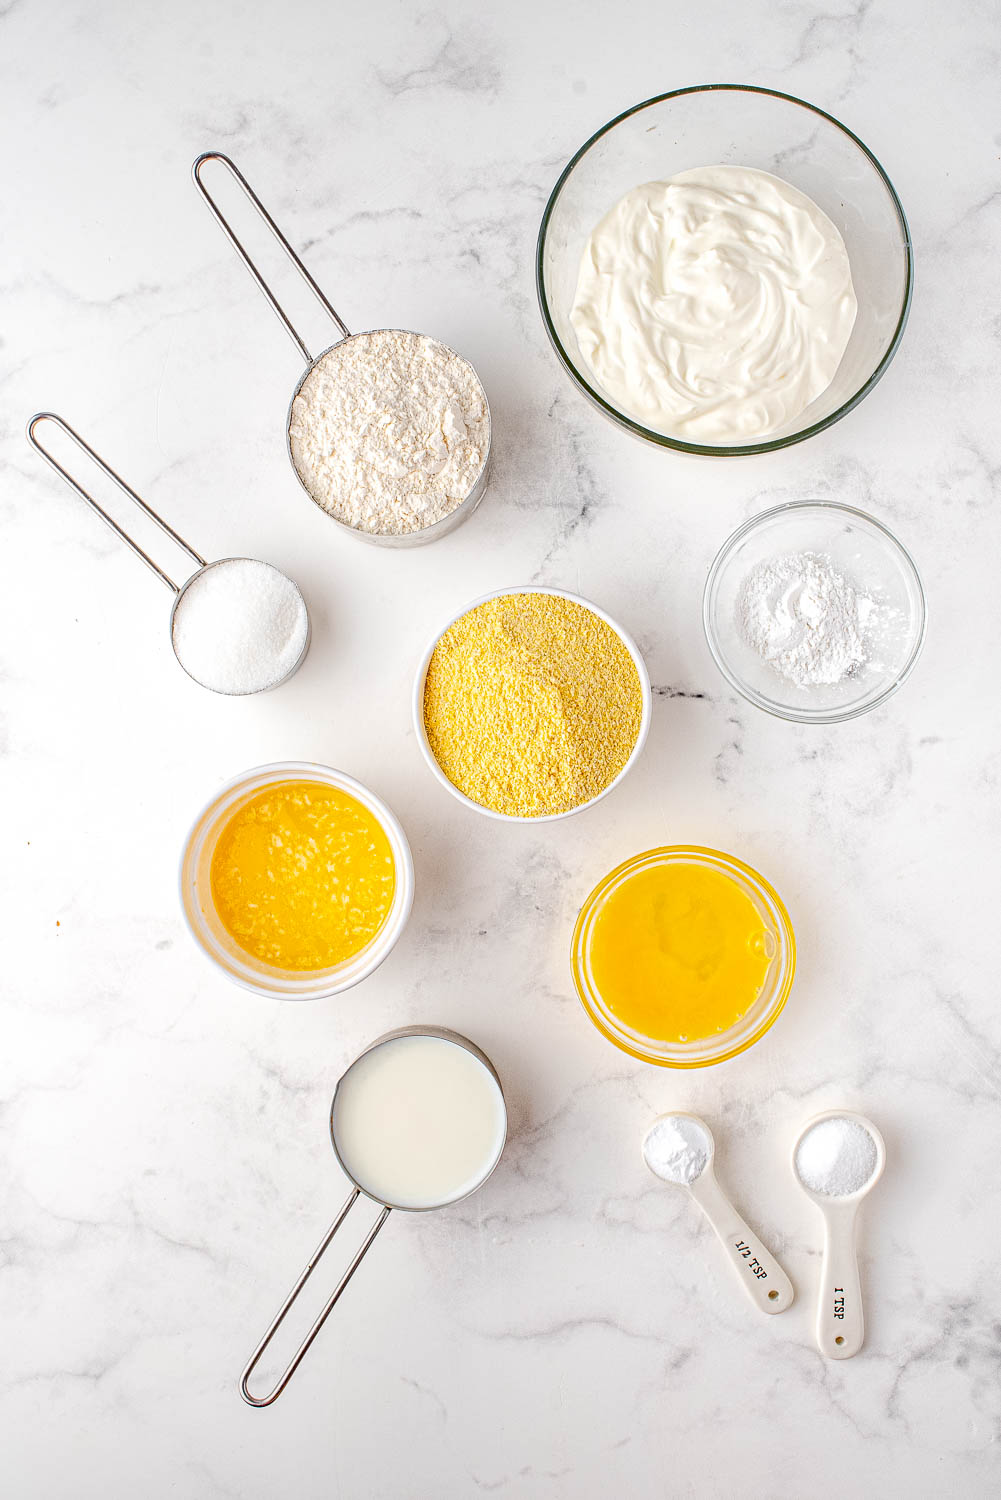 An overhead picture of all of the ingredients needed to make this cornbread recipe.